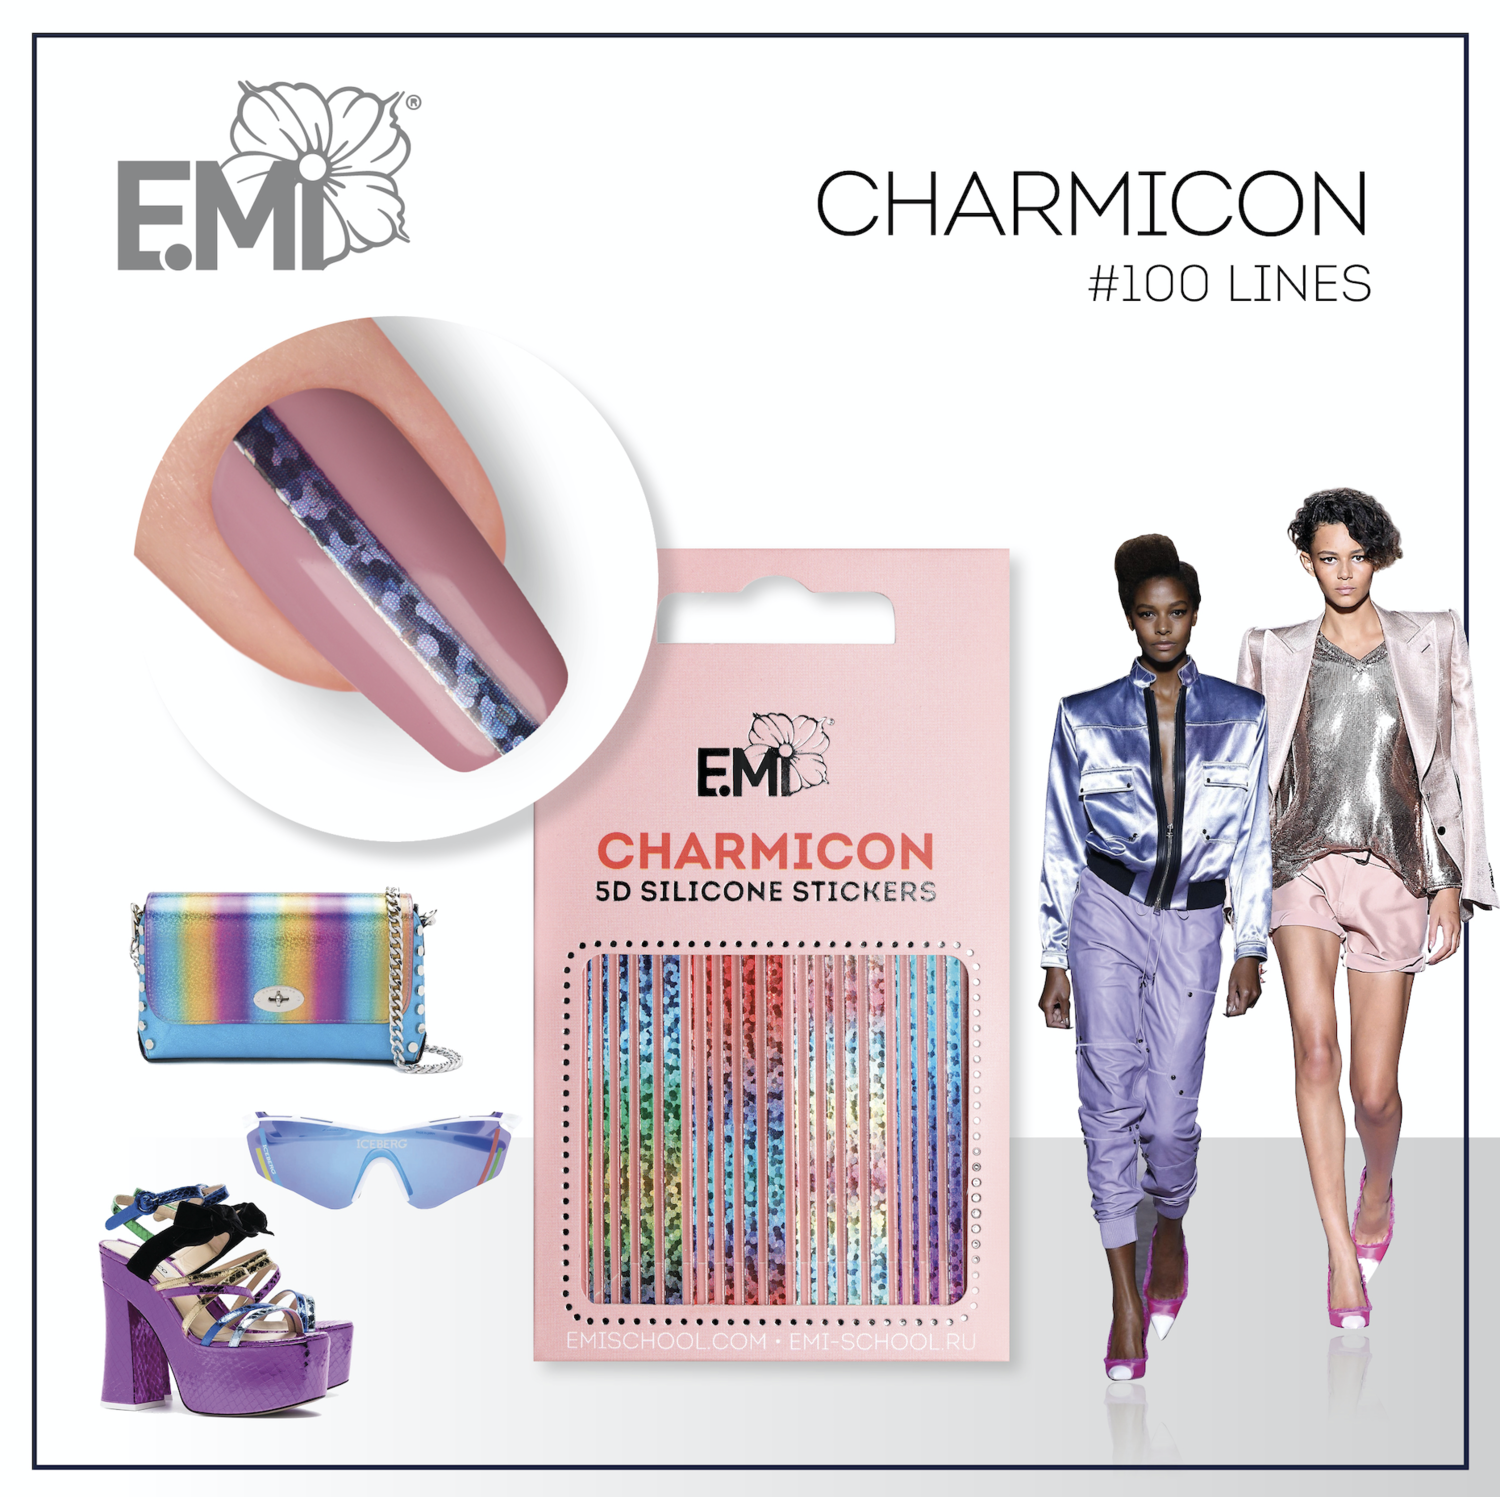 Charmicon Silicone Stickers #100 Lines